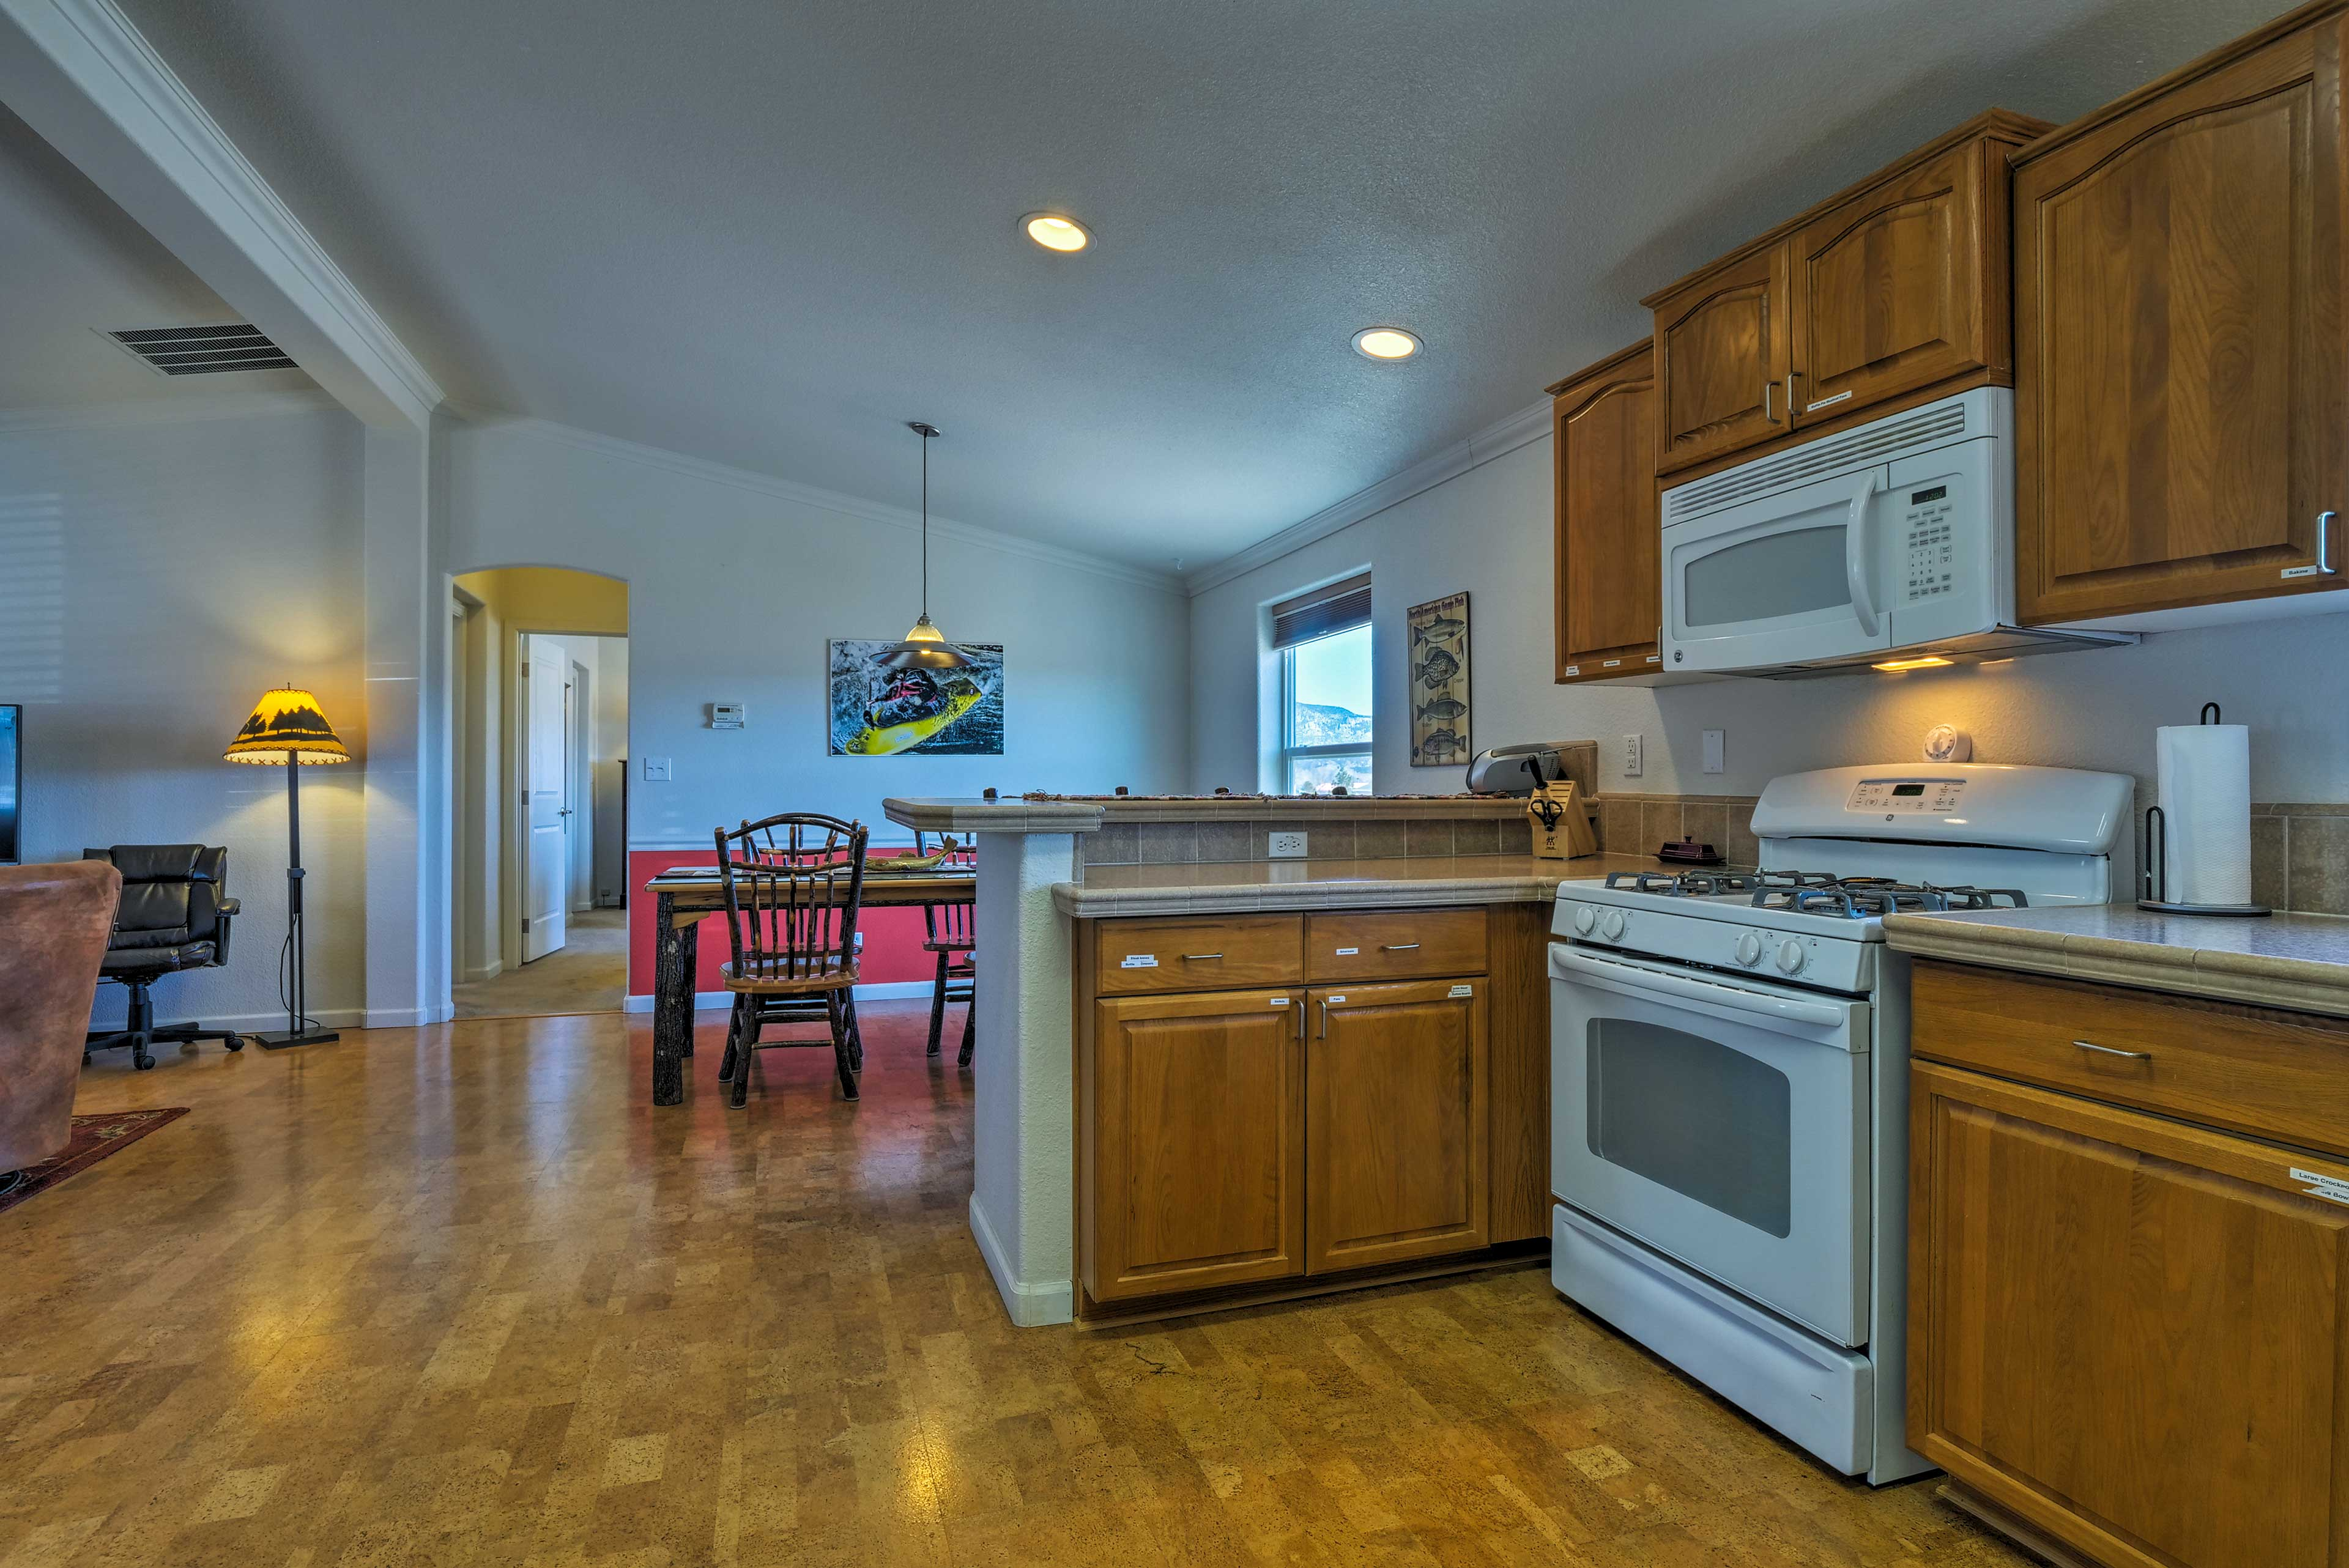 Kitchen | Fully Equipped w/ Cooking Basics